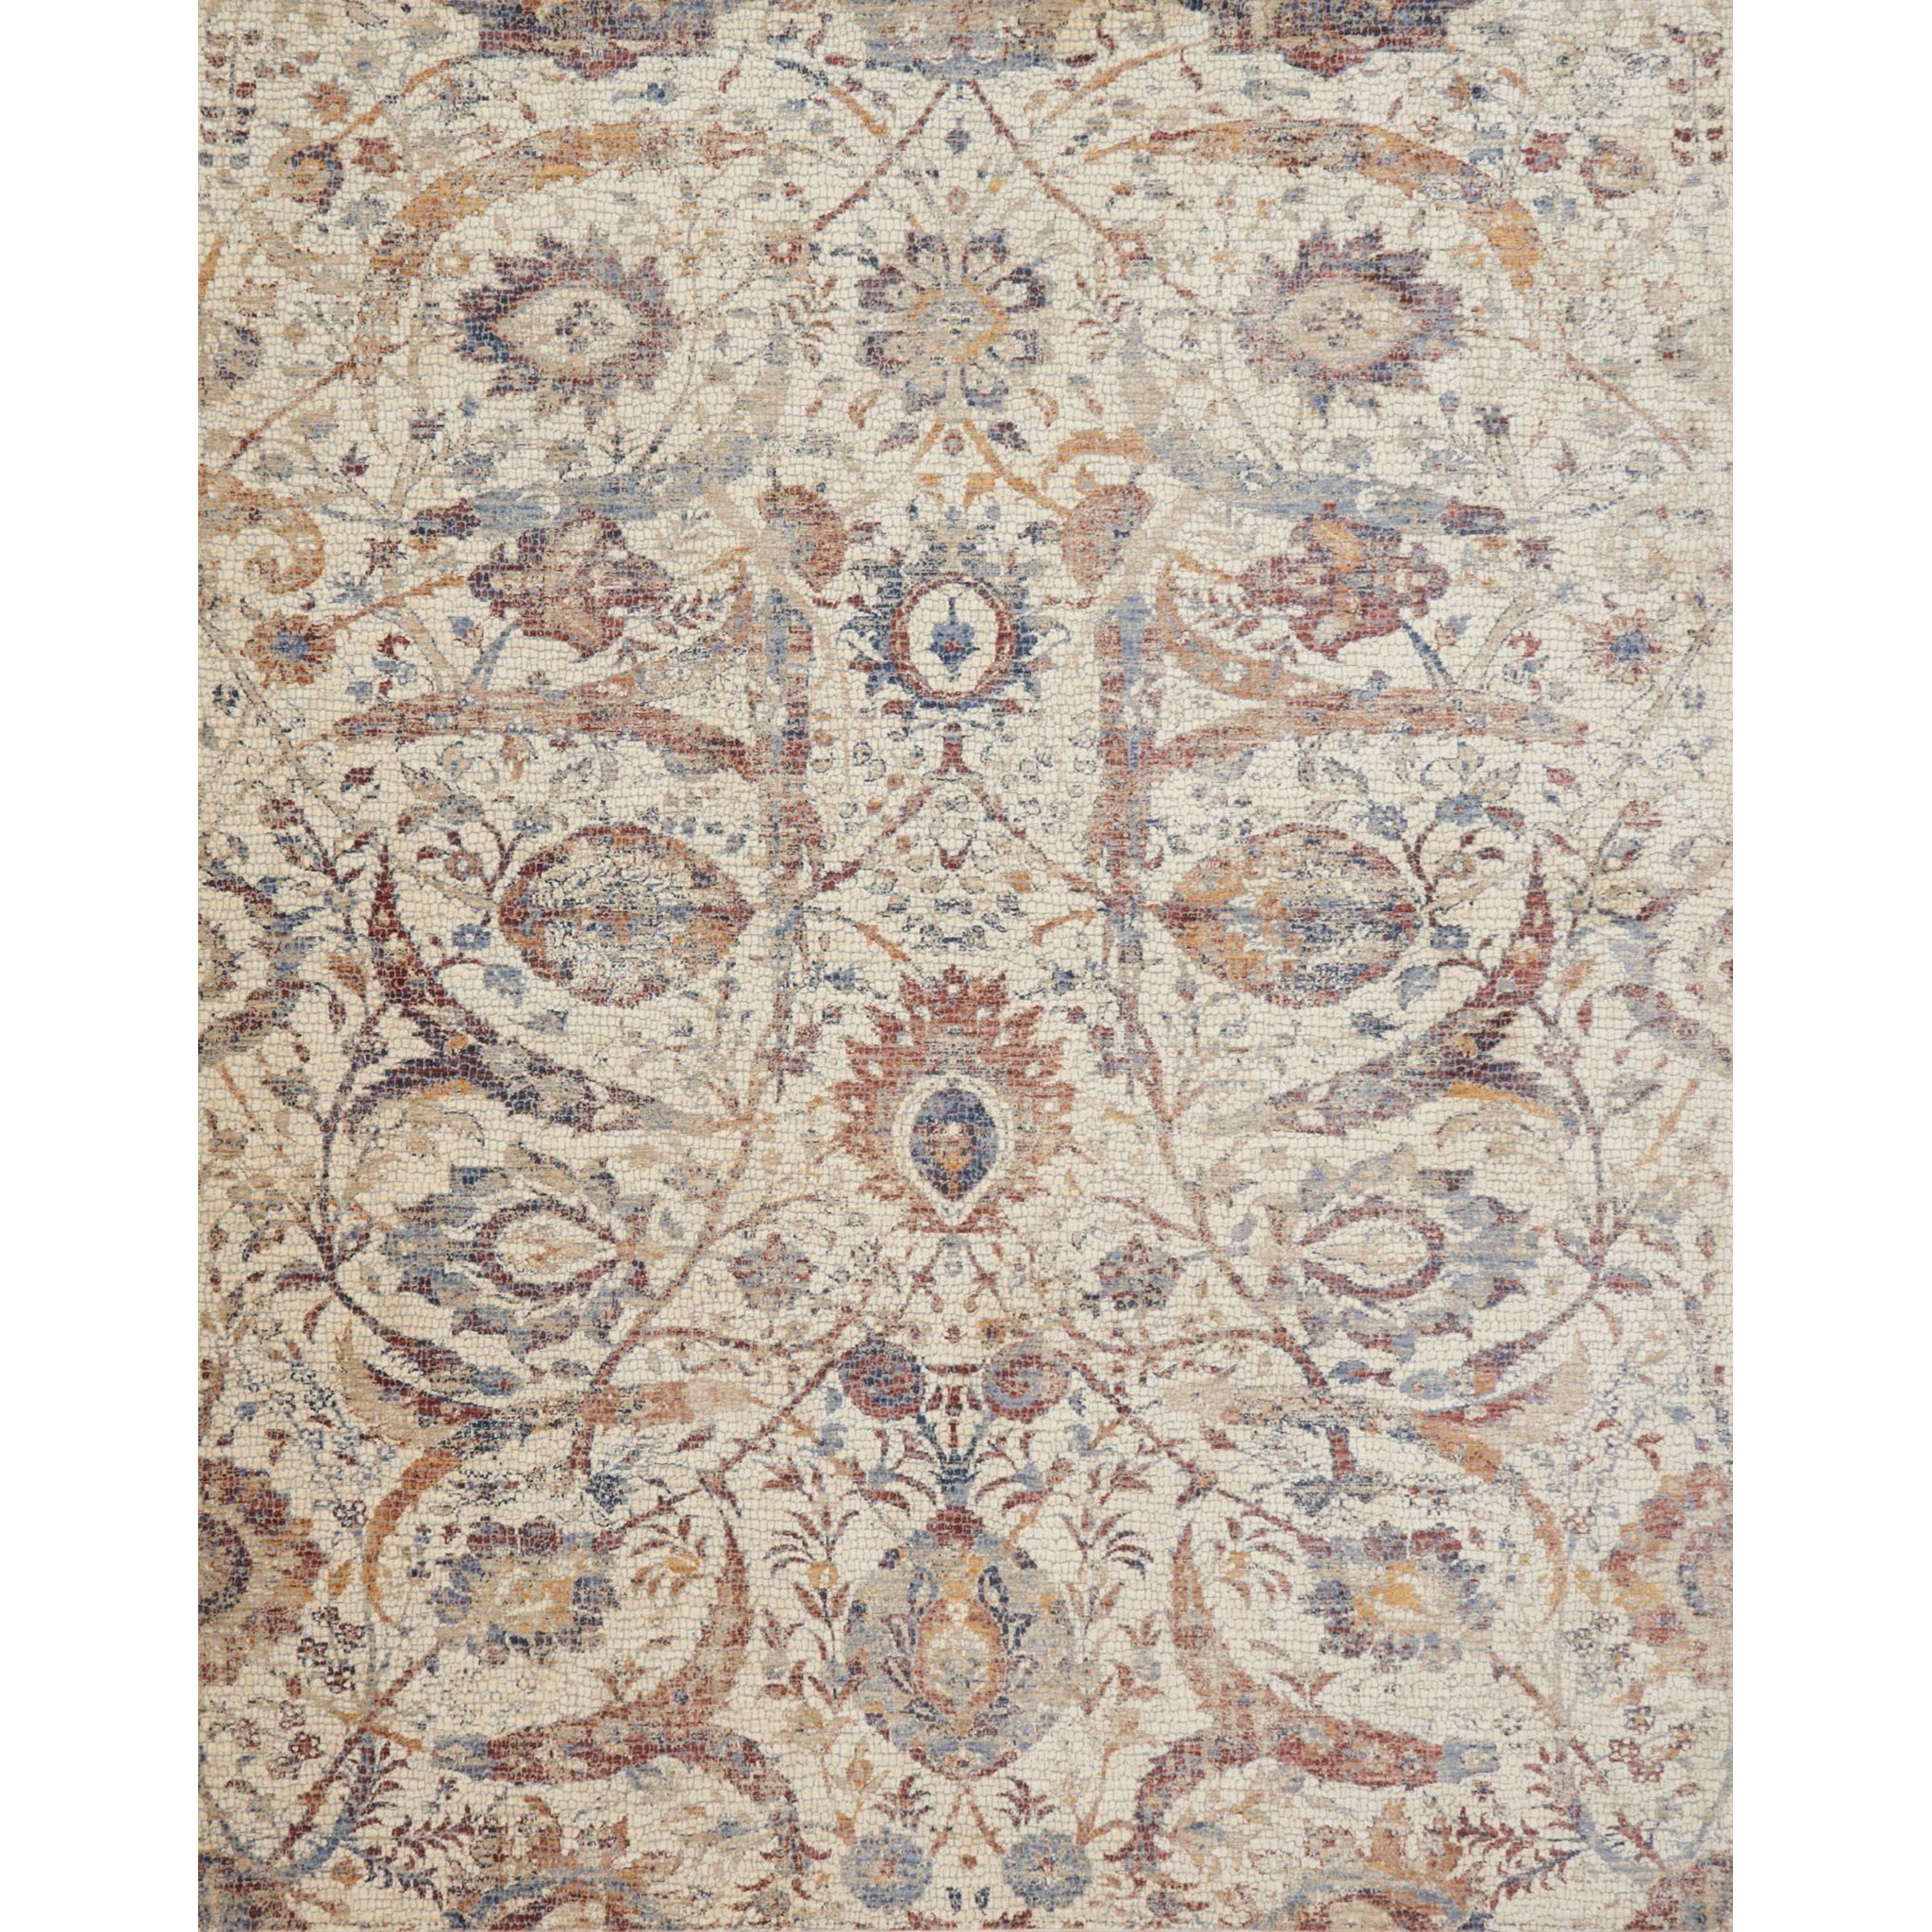 "Porcia 9'-6"" X 12'-6"" Area Rug by Loloi Rugs at Virginia Furniture Market"